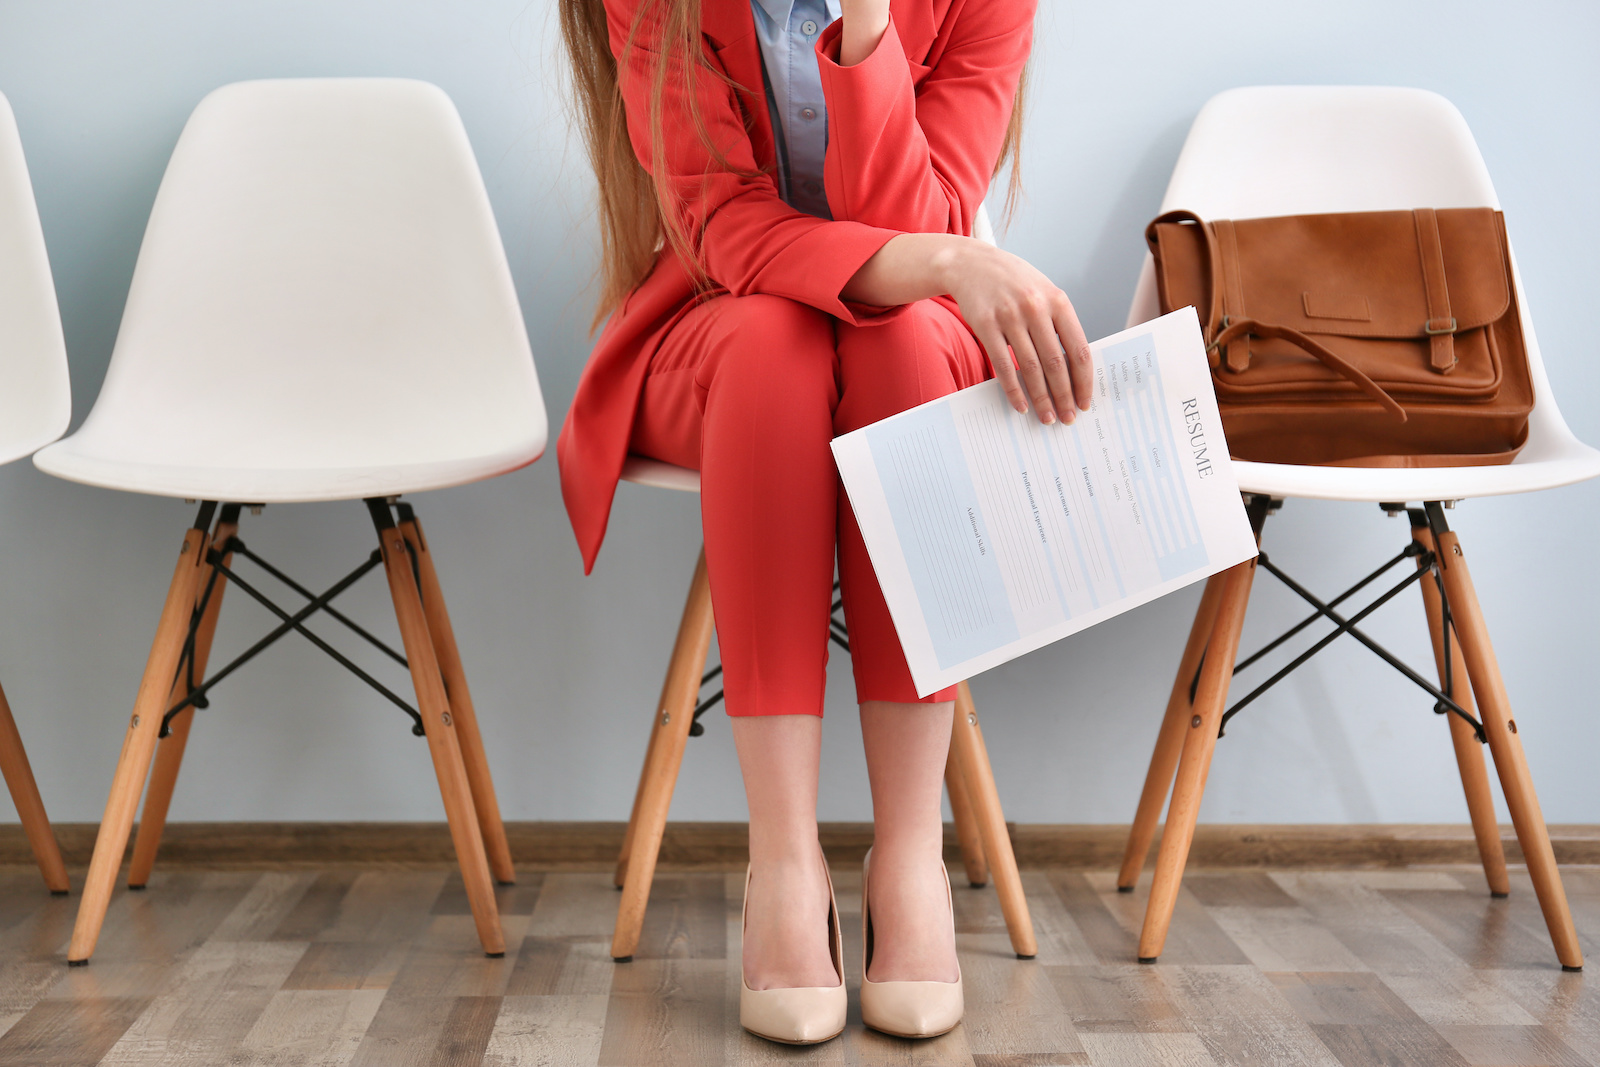 What to do when unemployed: A woman sits, waiting for an interview